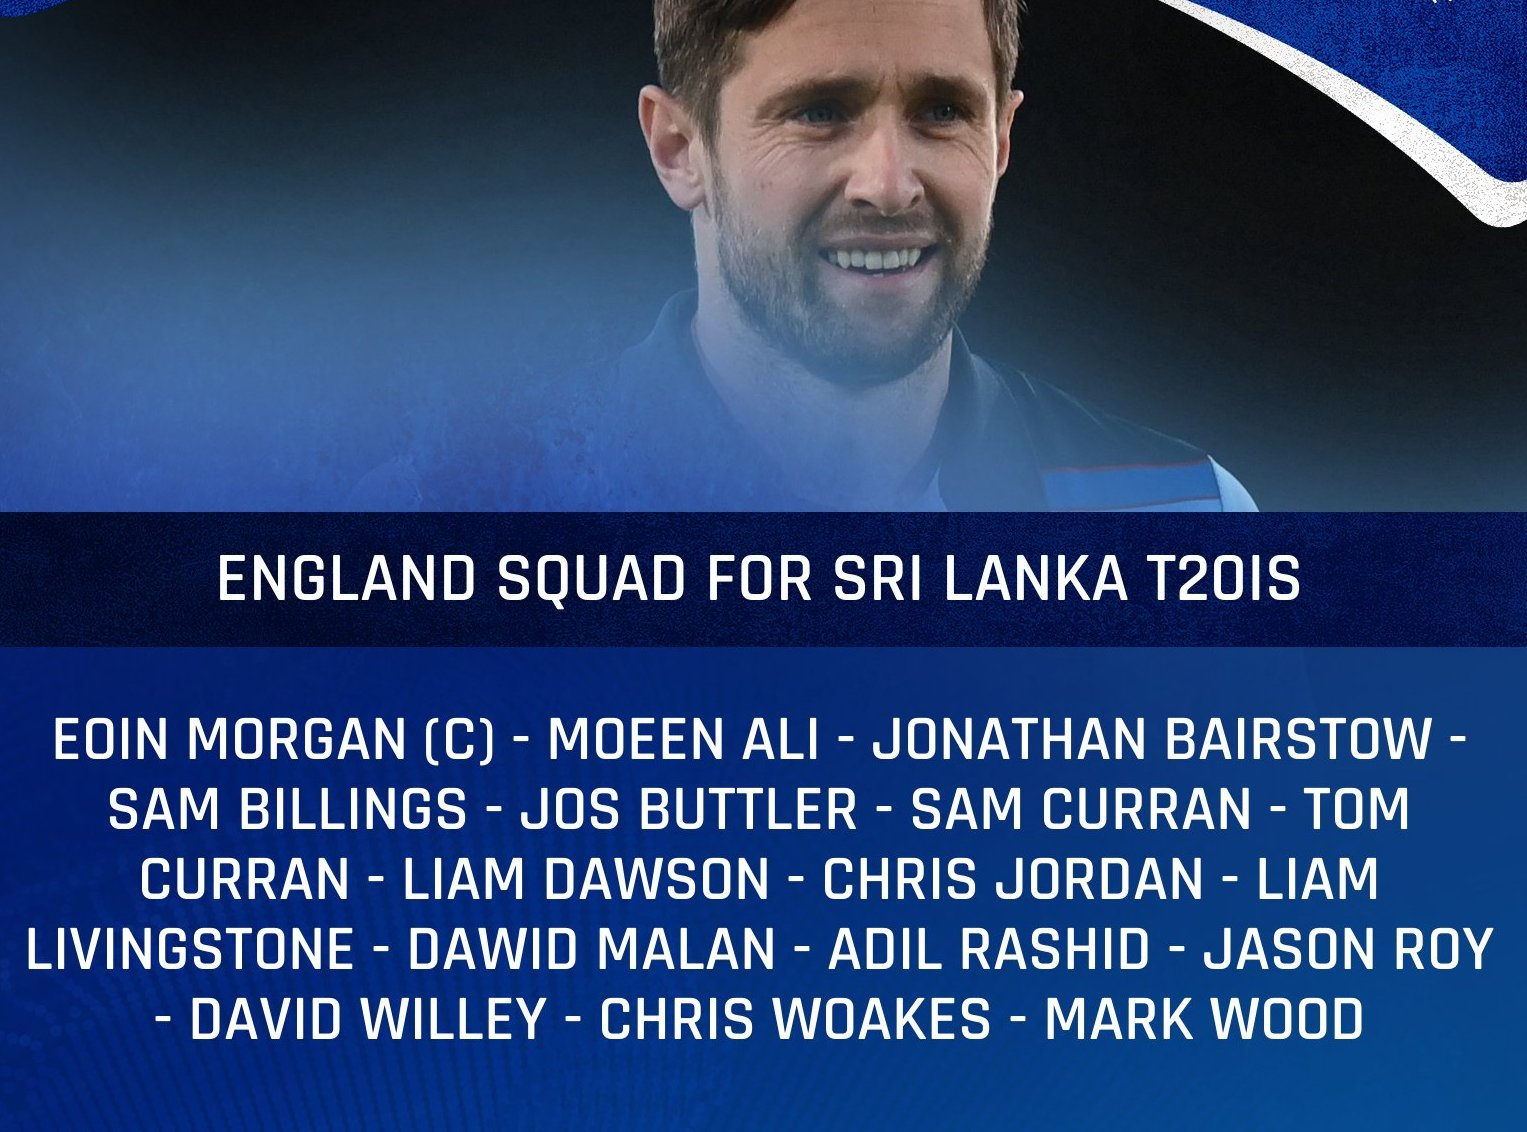 England recall Woakes, Willey, and Dawson for SL white-ball series